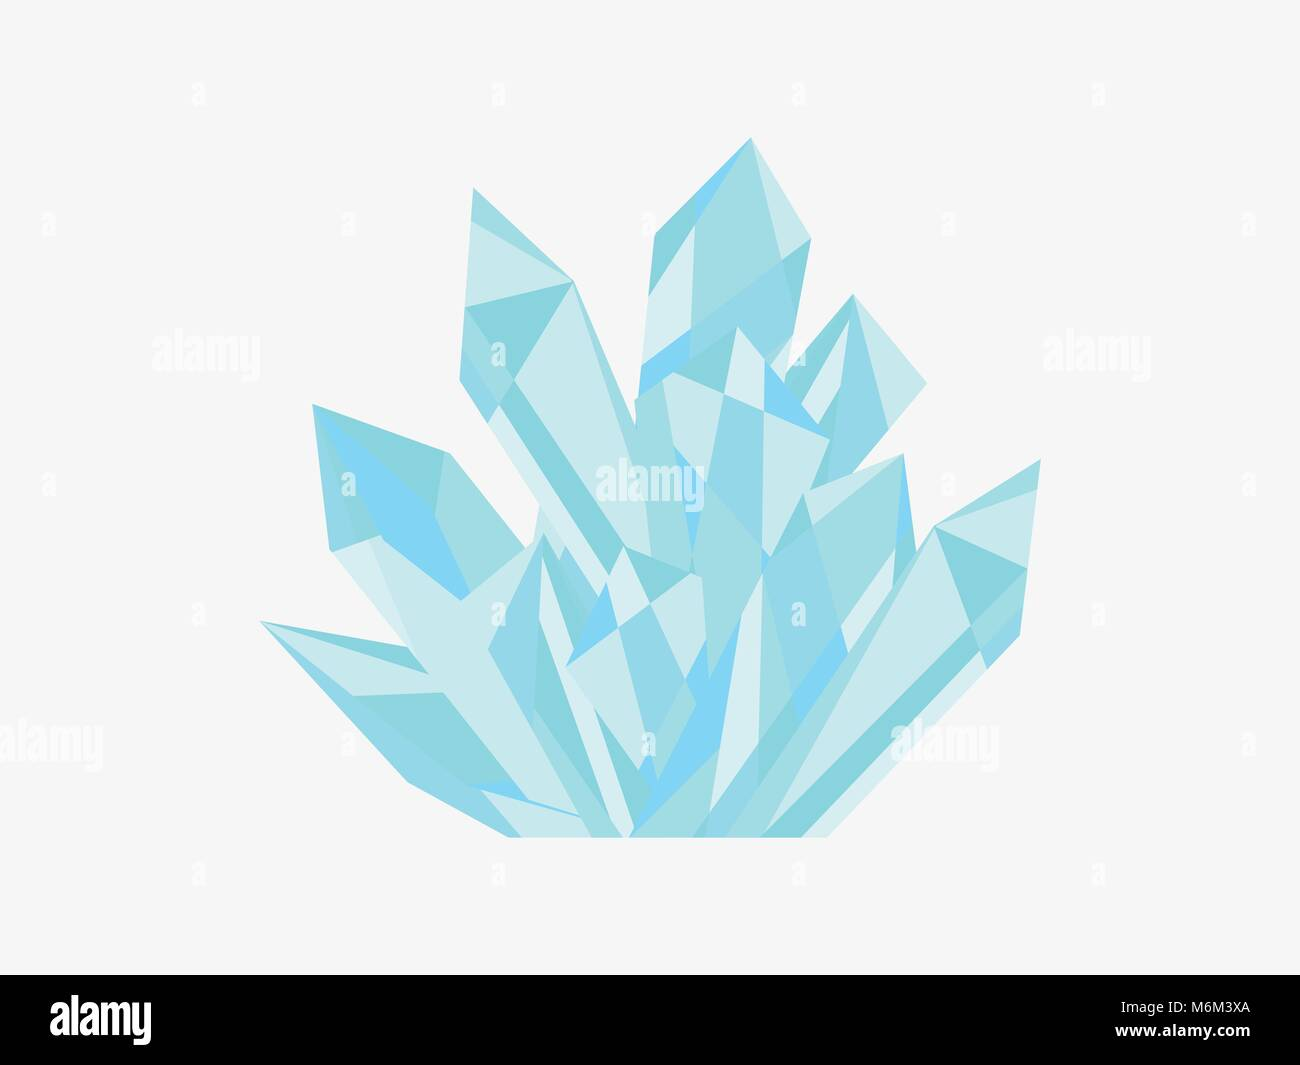 Crystal isolated on white background. Minerals, design elements. A precious stone, polygons. Vector illustration - Stock Image